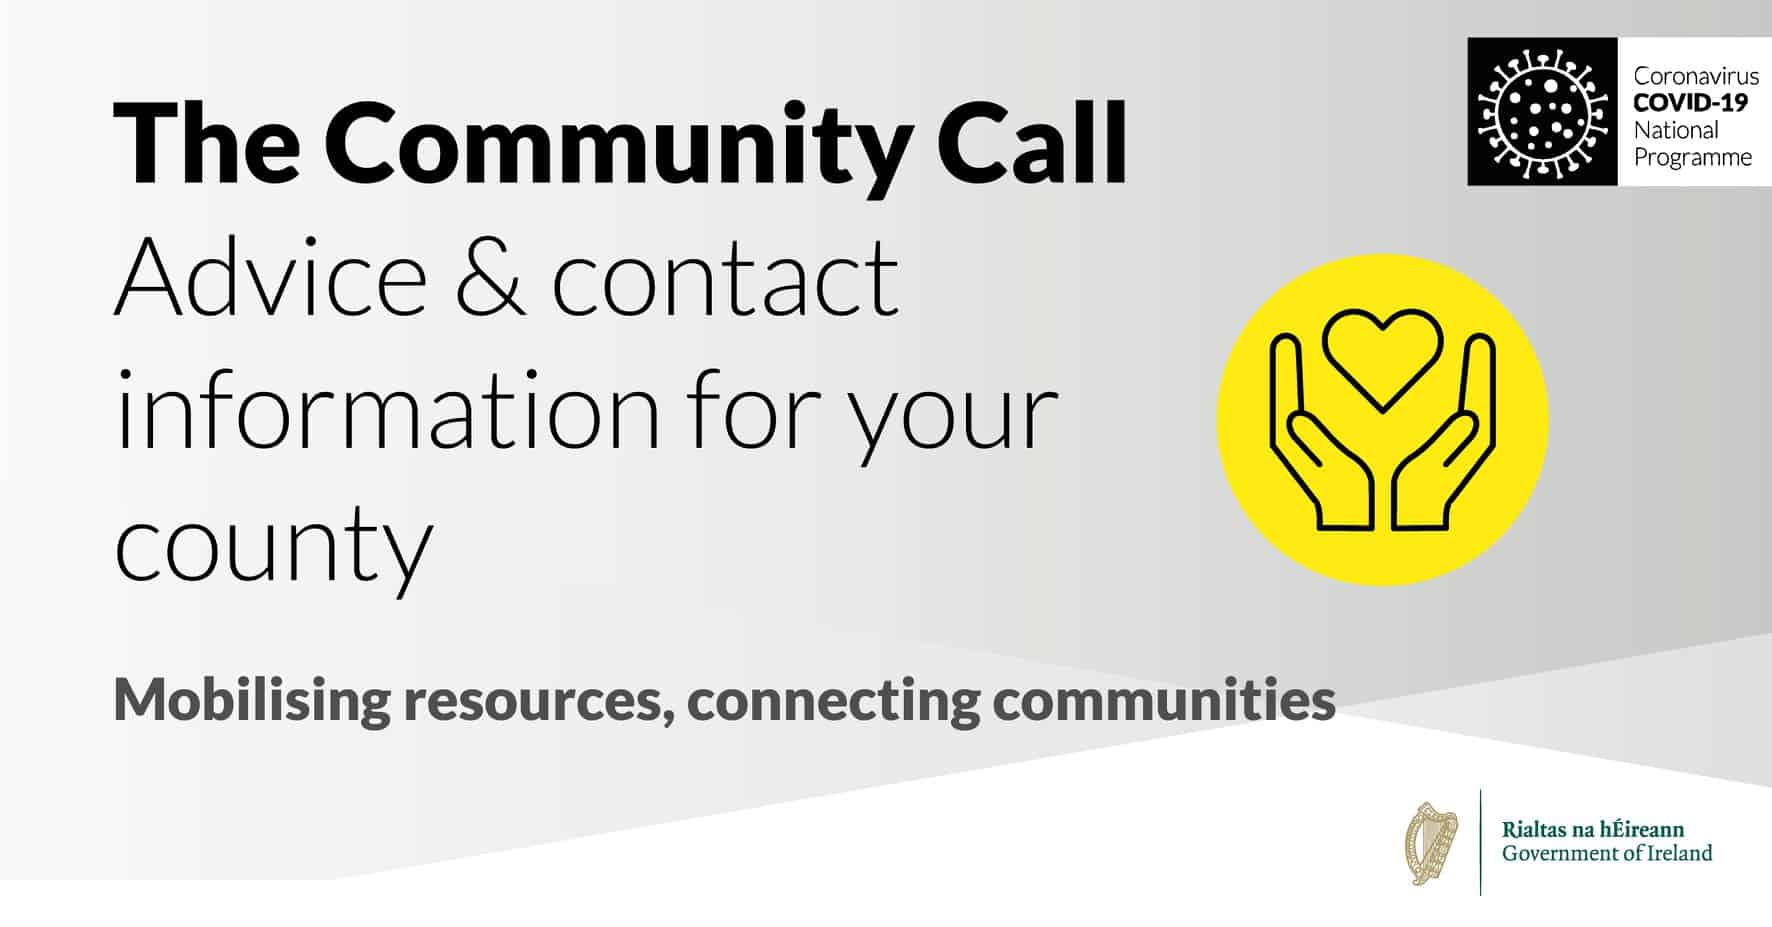 The Community Call - Advice and Contact Information for Your County